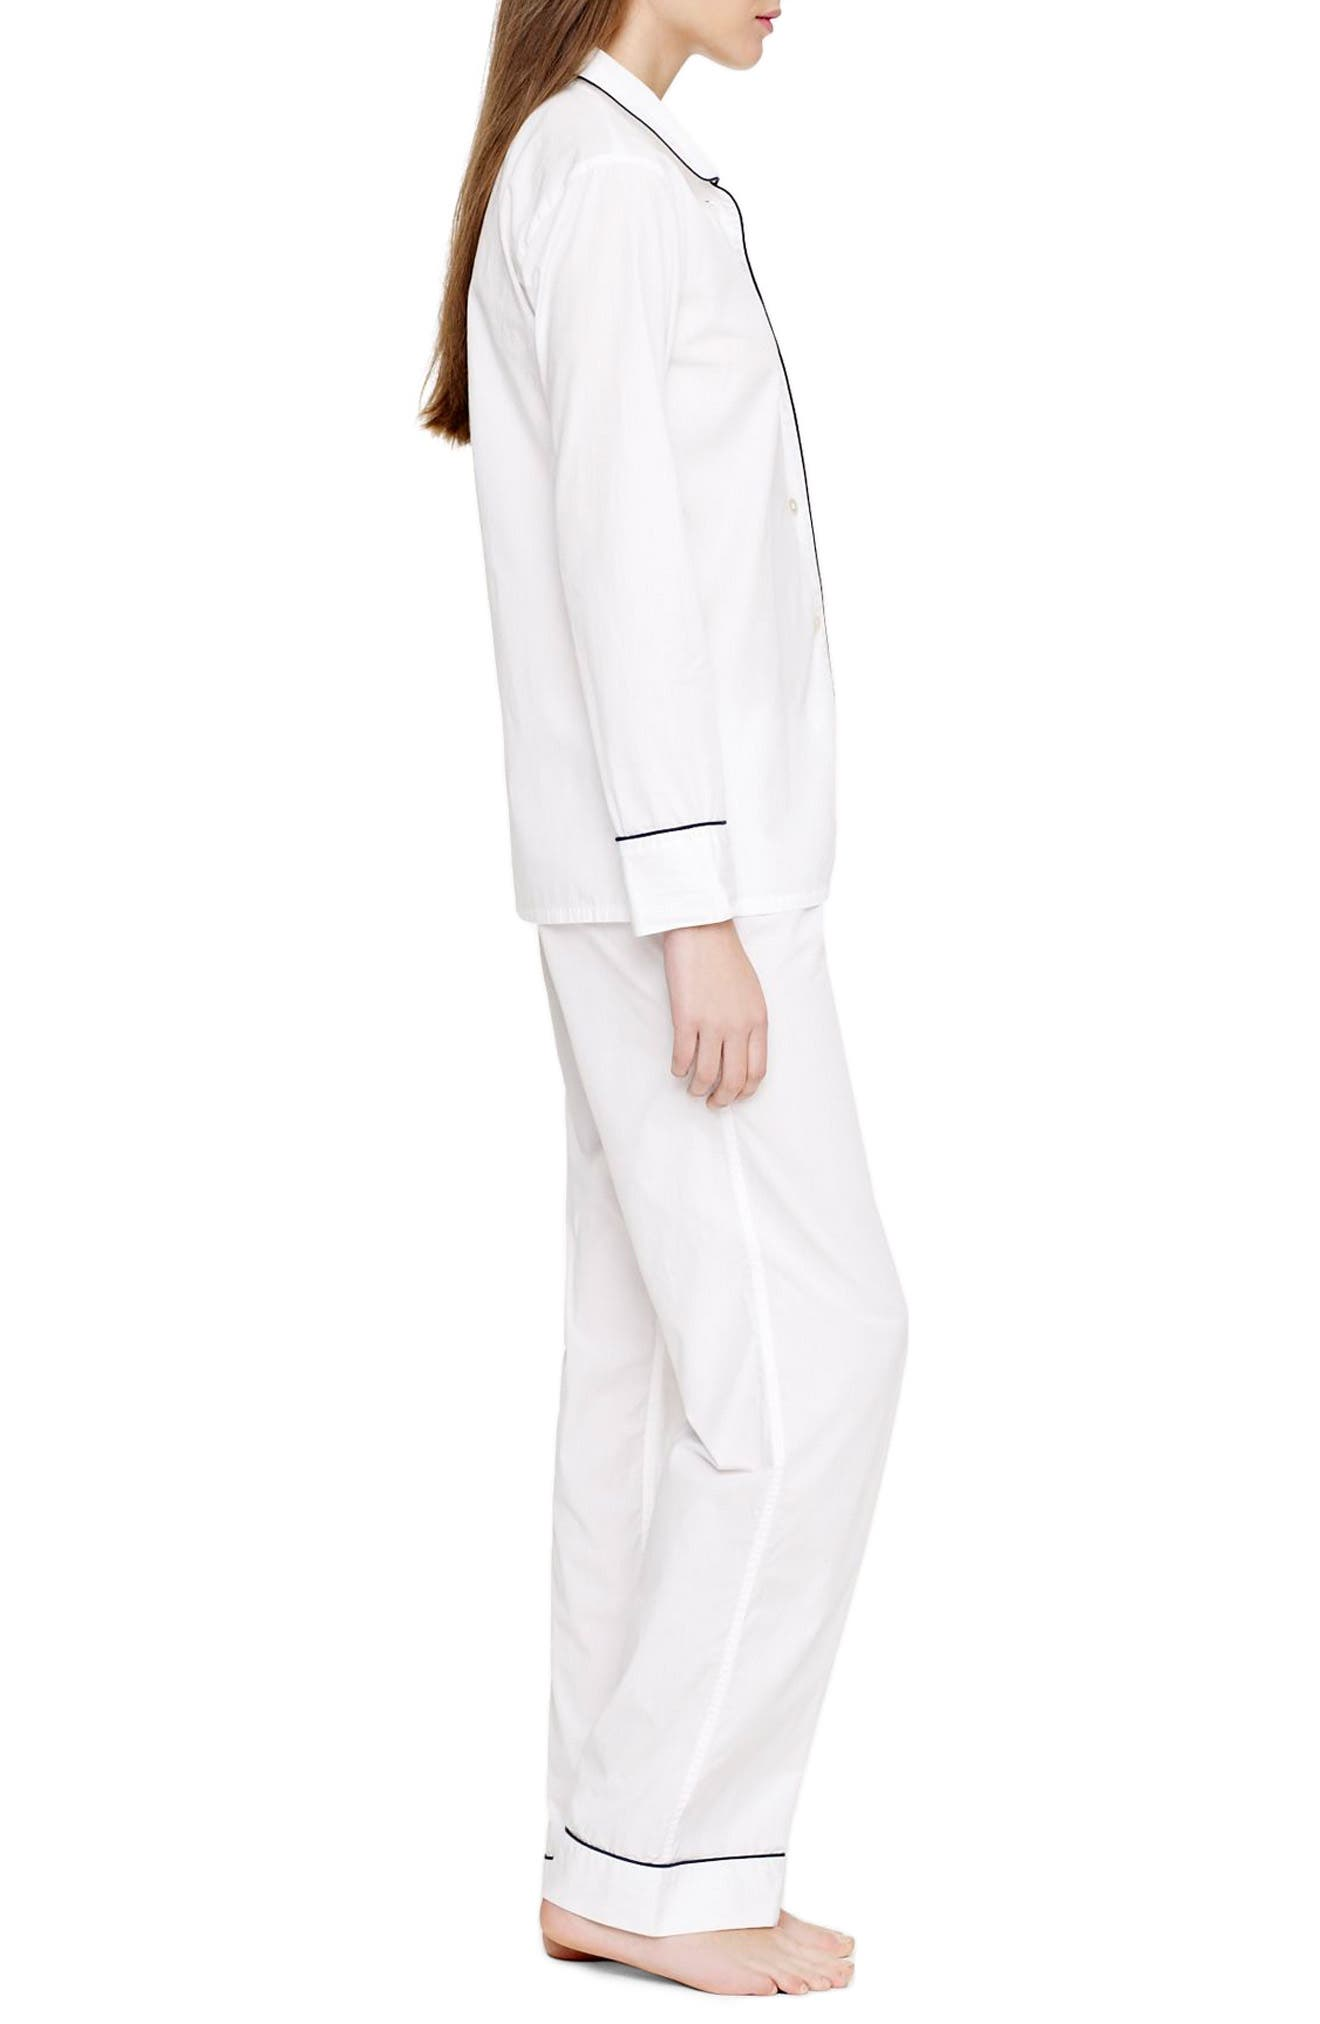 J.CREW, Vintage Cotton Pajamas, Alternate thumbnail 3, color, WHITE